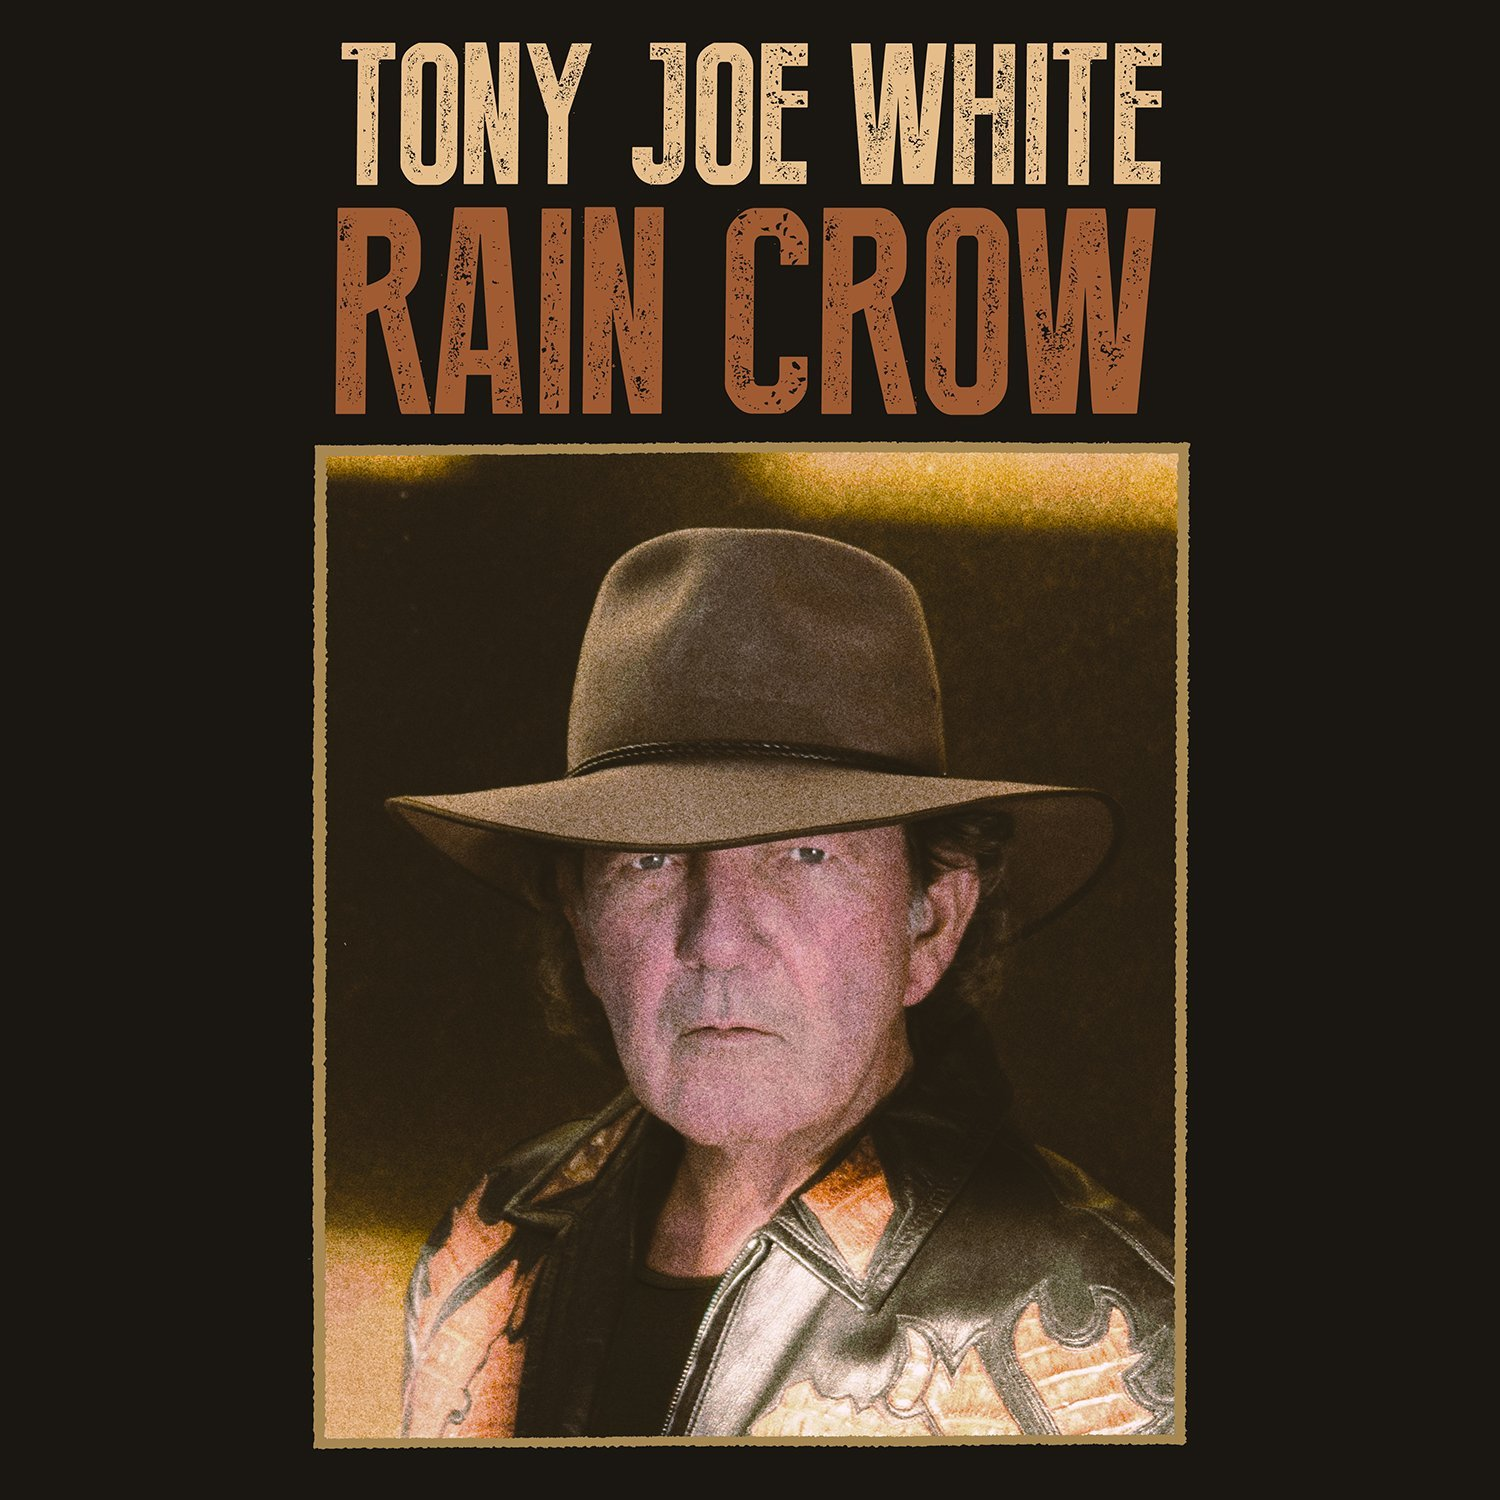 TONY JOE WHITE – Hoochie woman